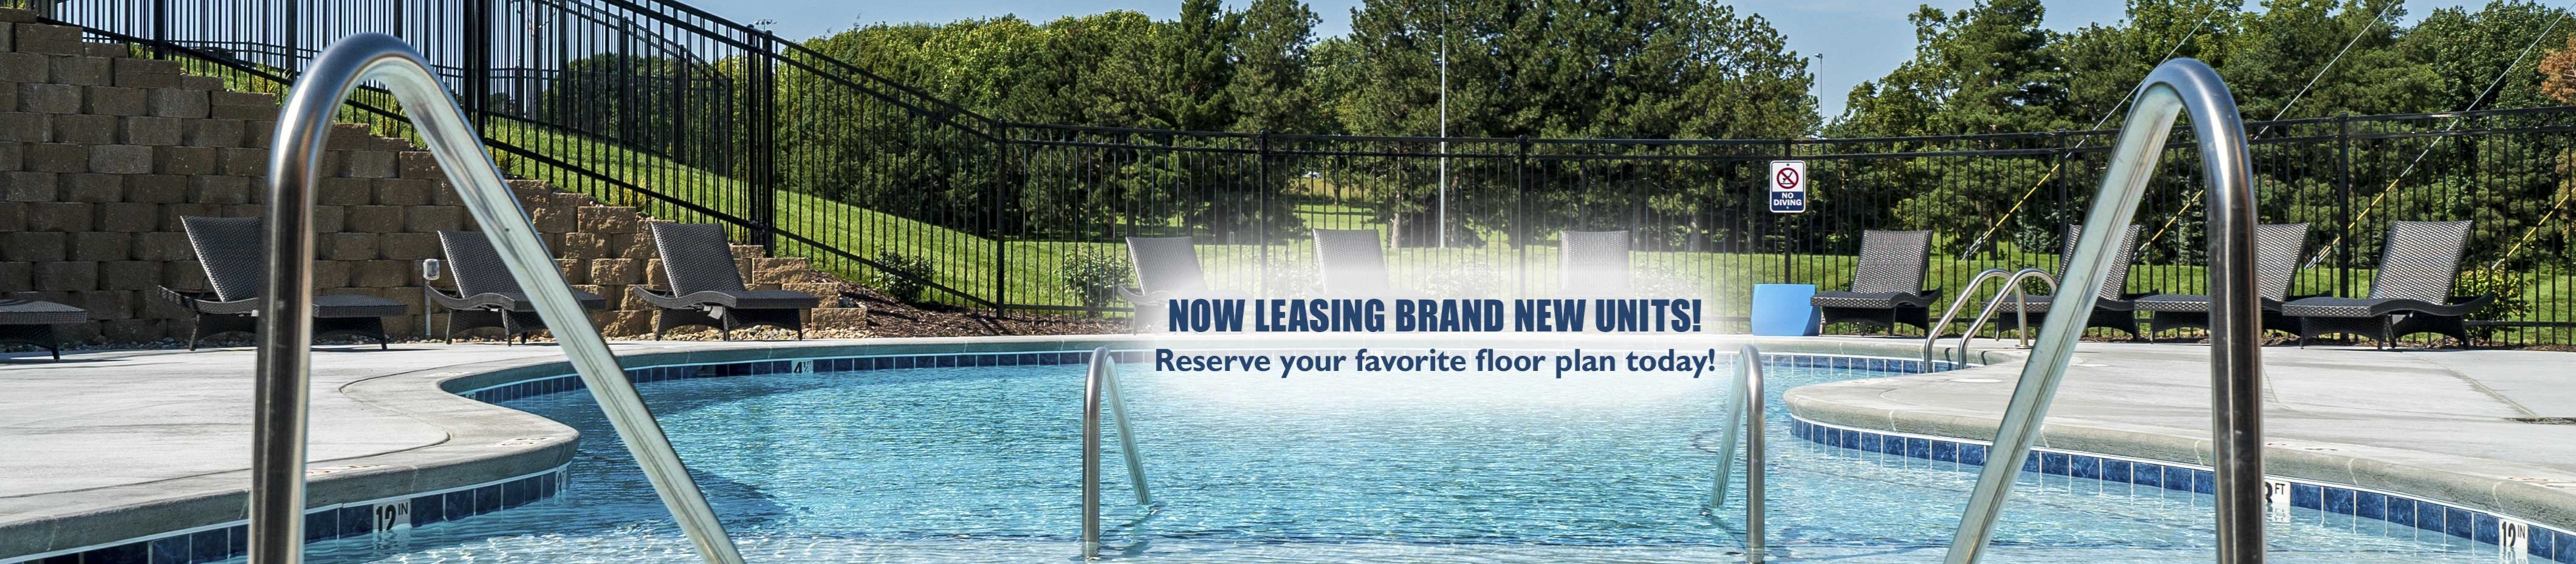 The Villas at Mahoney Park in Lincoln NE is now leasing brand new units